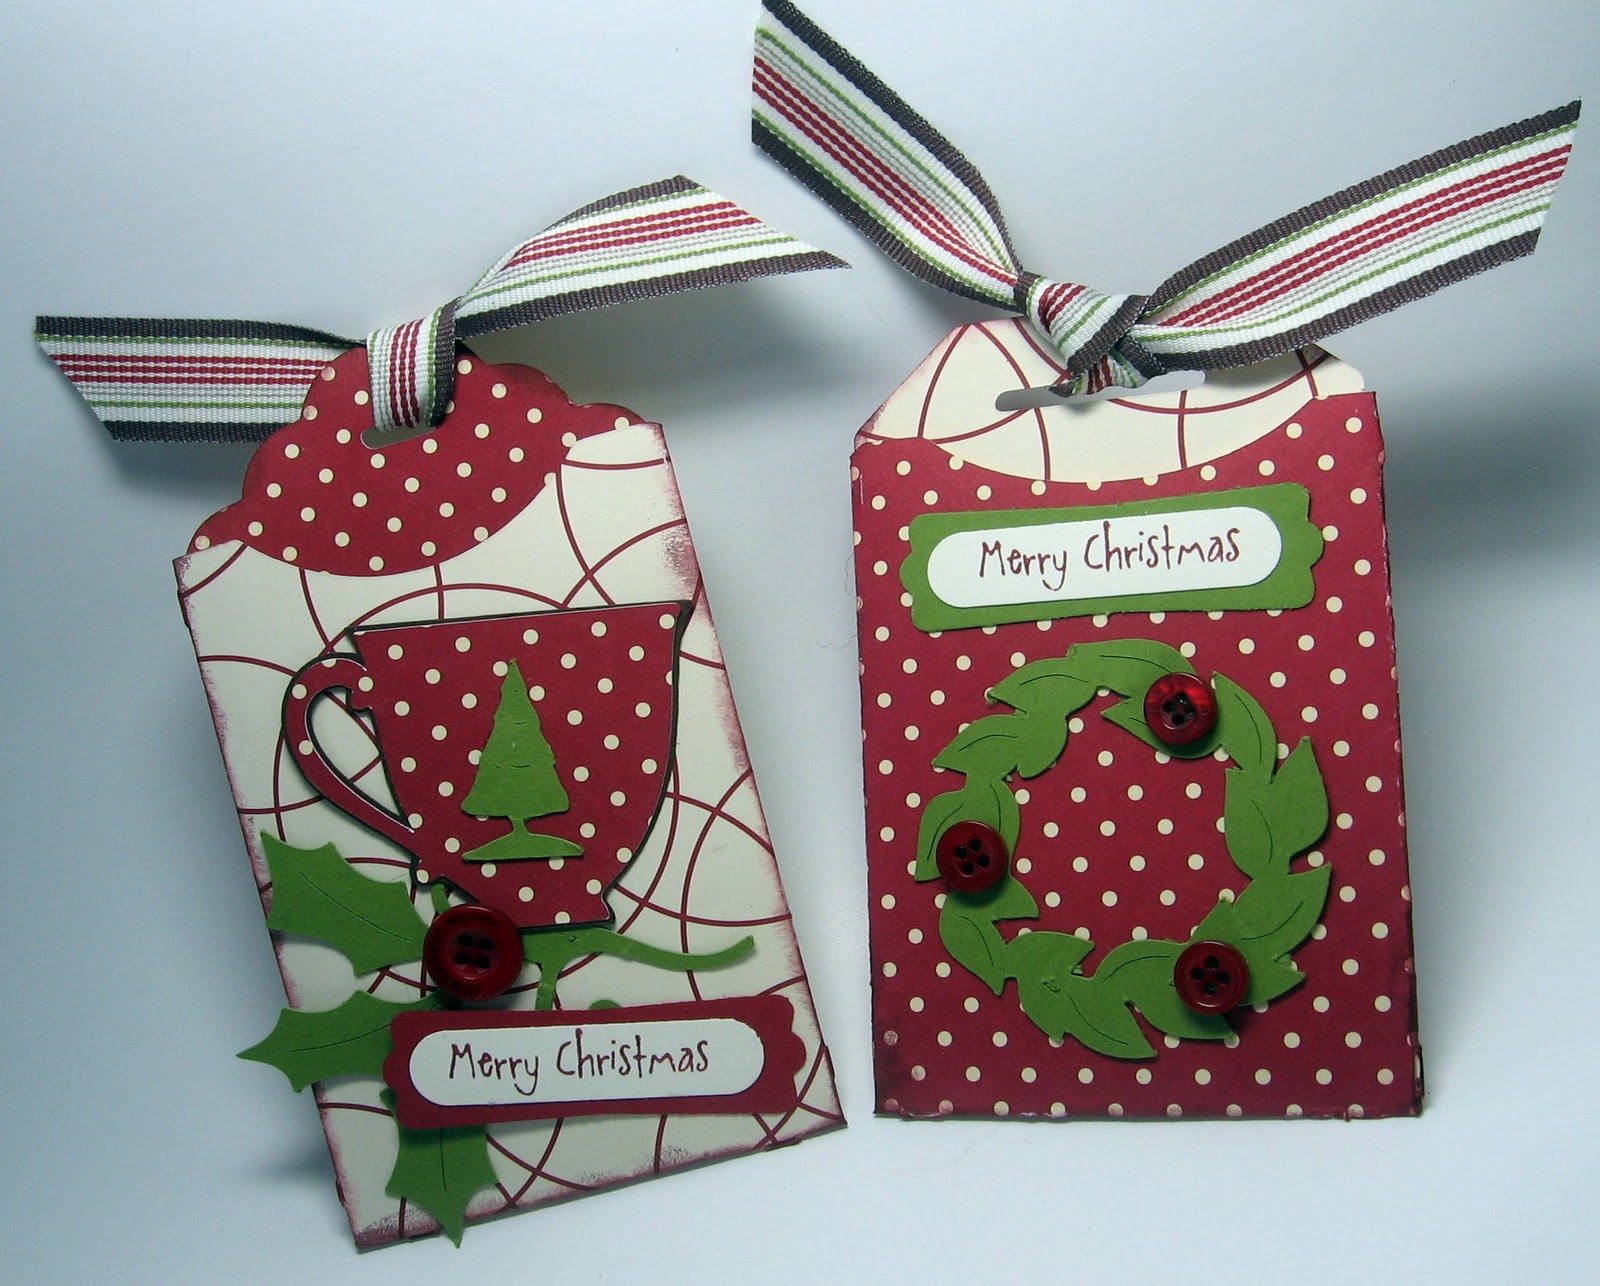 Make a gift card a little more special with this cute packaging you can make yourself.